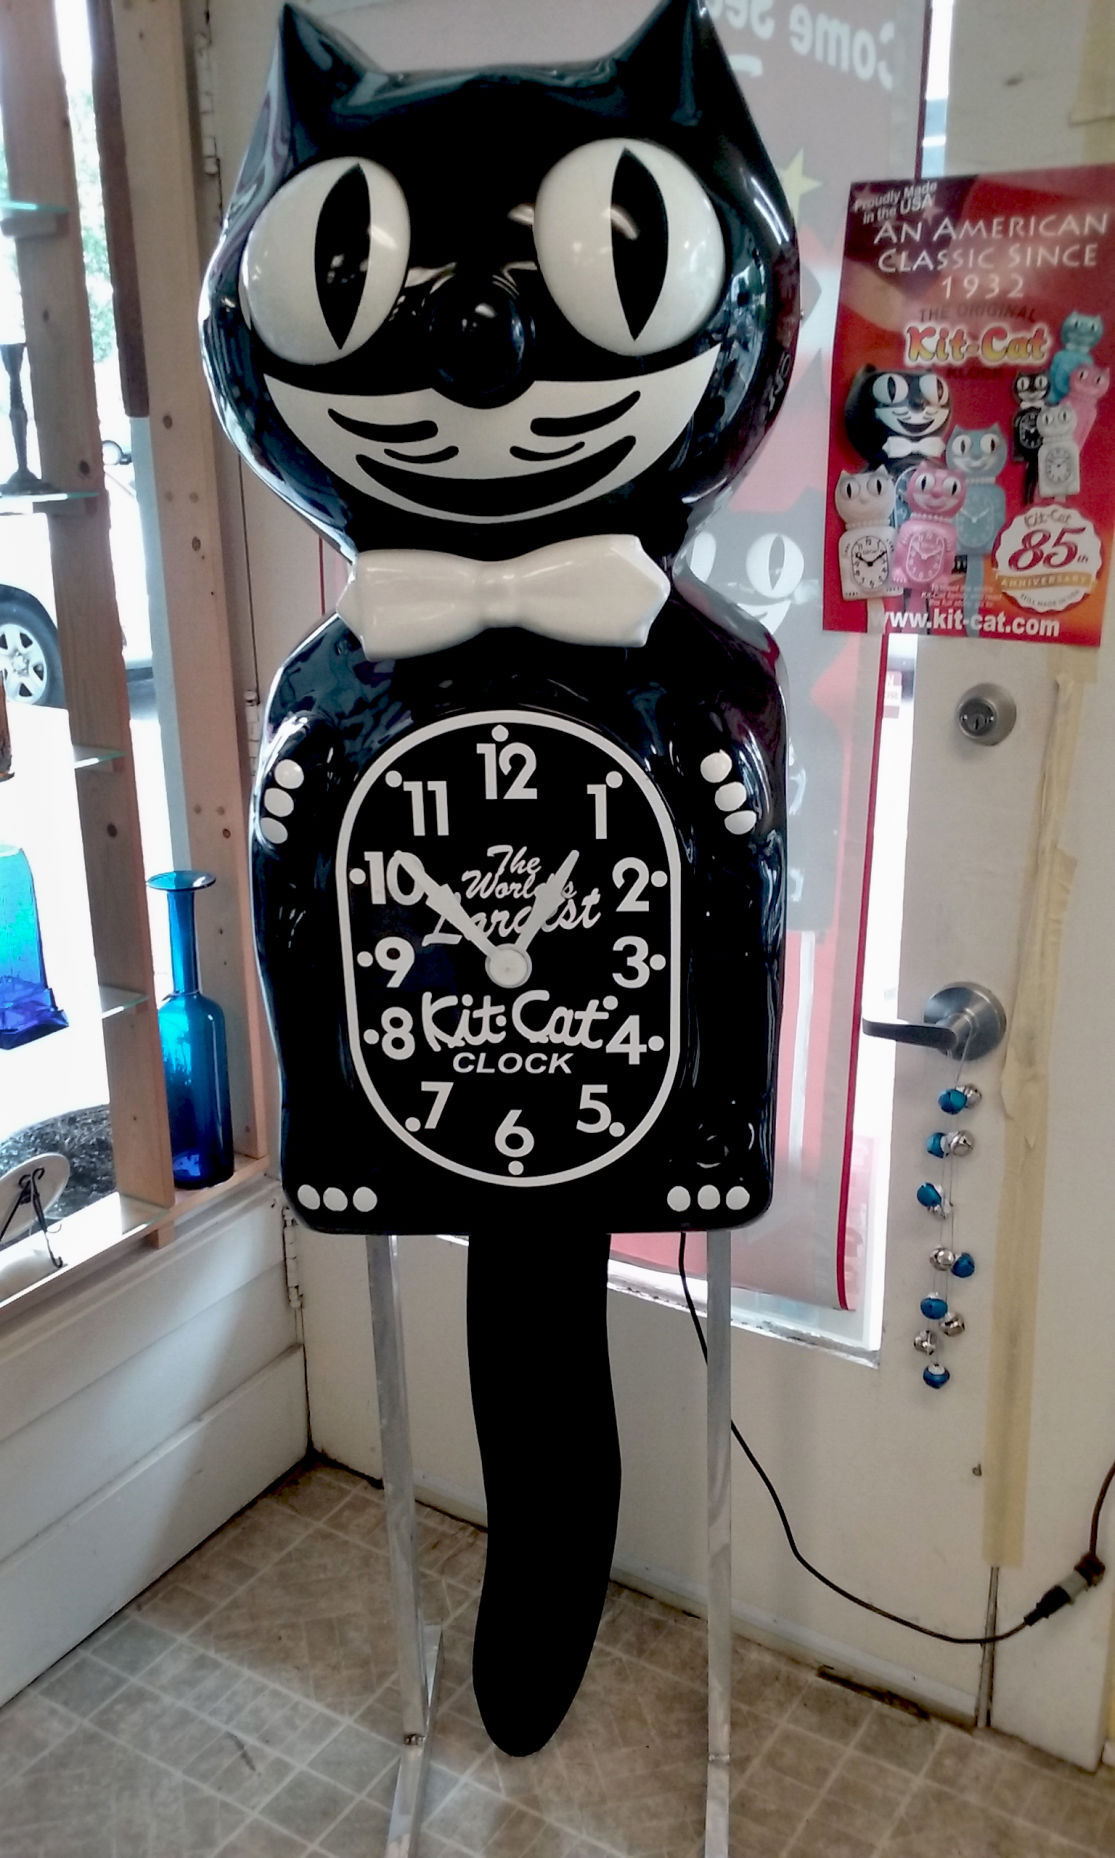 kit cat clock celebrates 85 years south coast. Black Bedroom Furniture Sets. Home Design Ideas